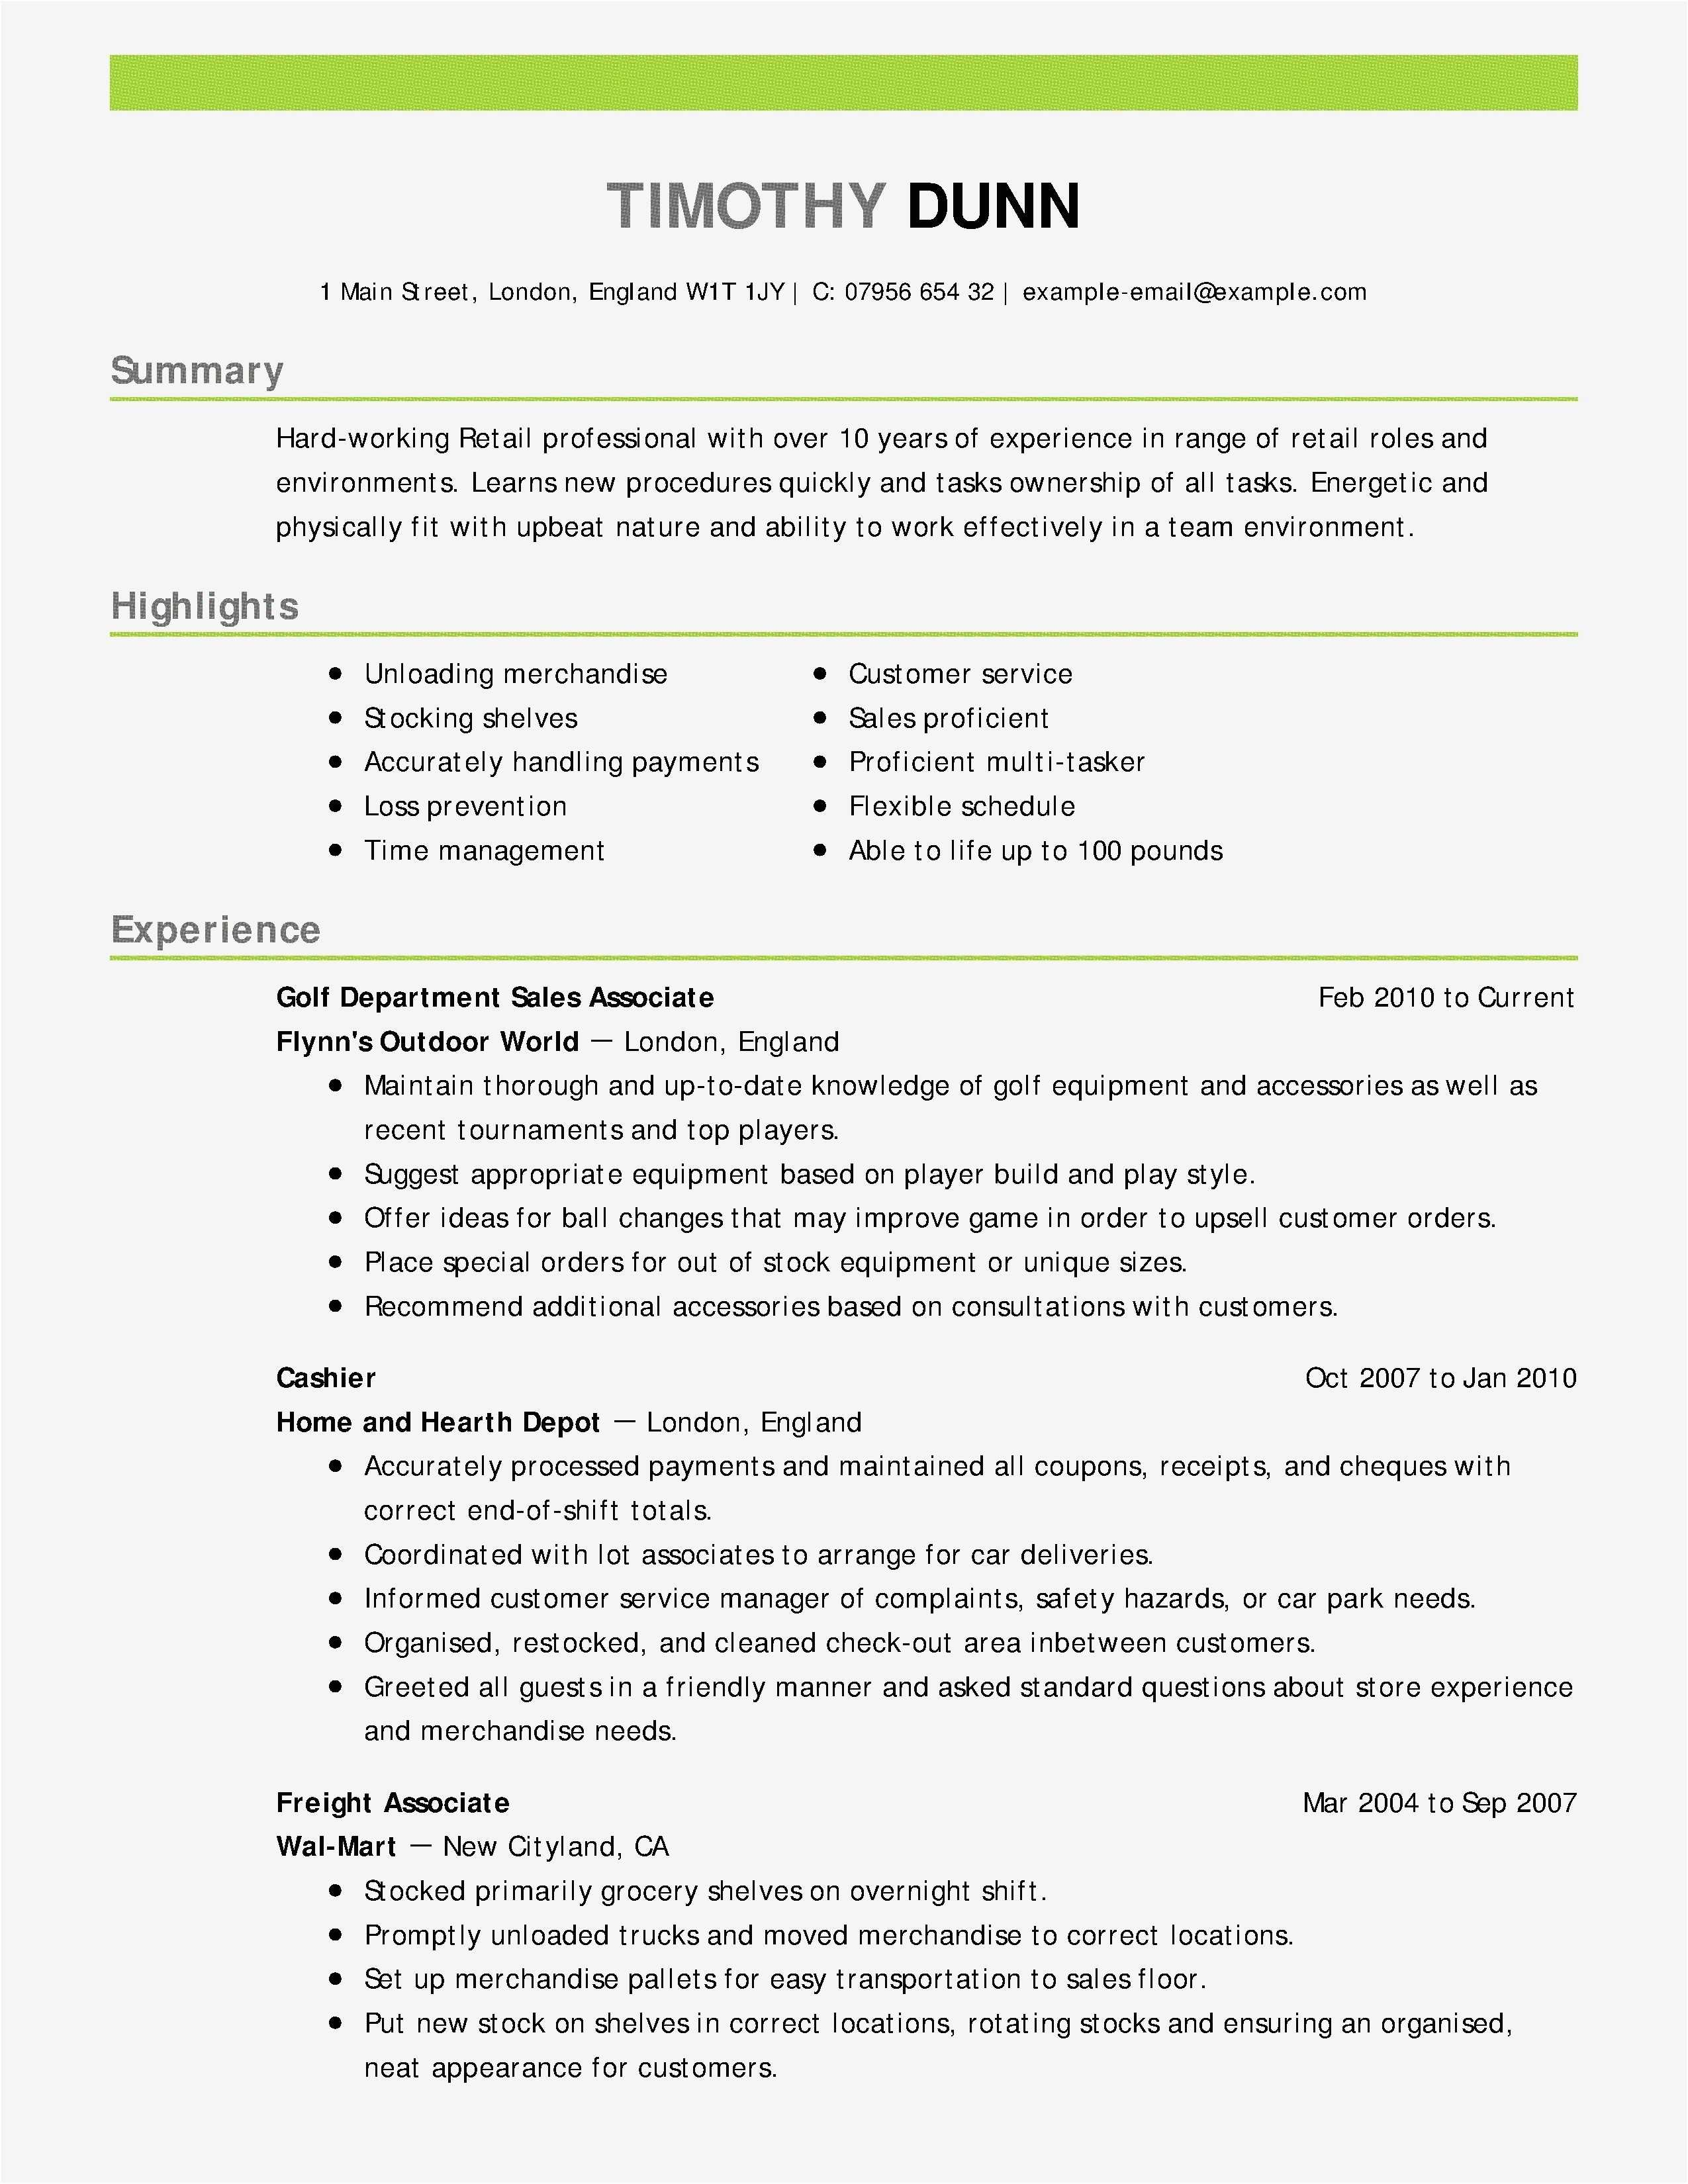 Print Resume Near Me - 20 Free How to Do A Cover Letter for Resume New